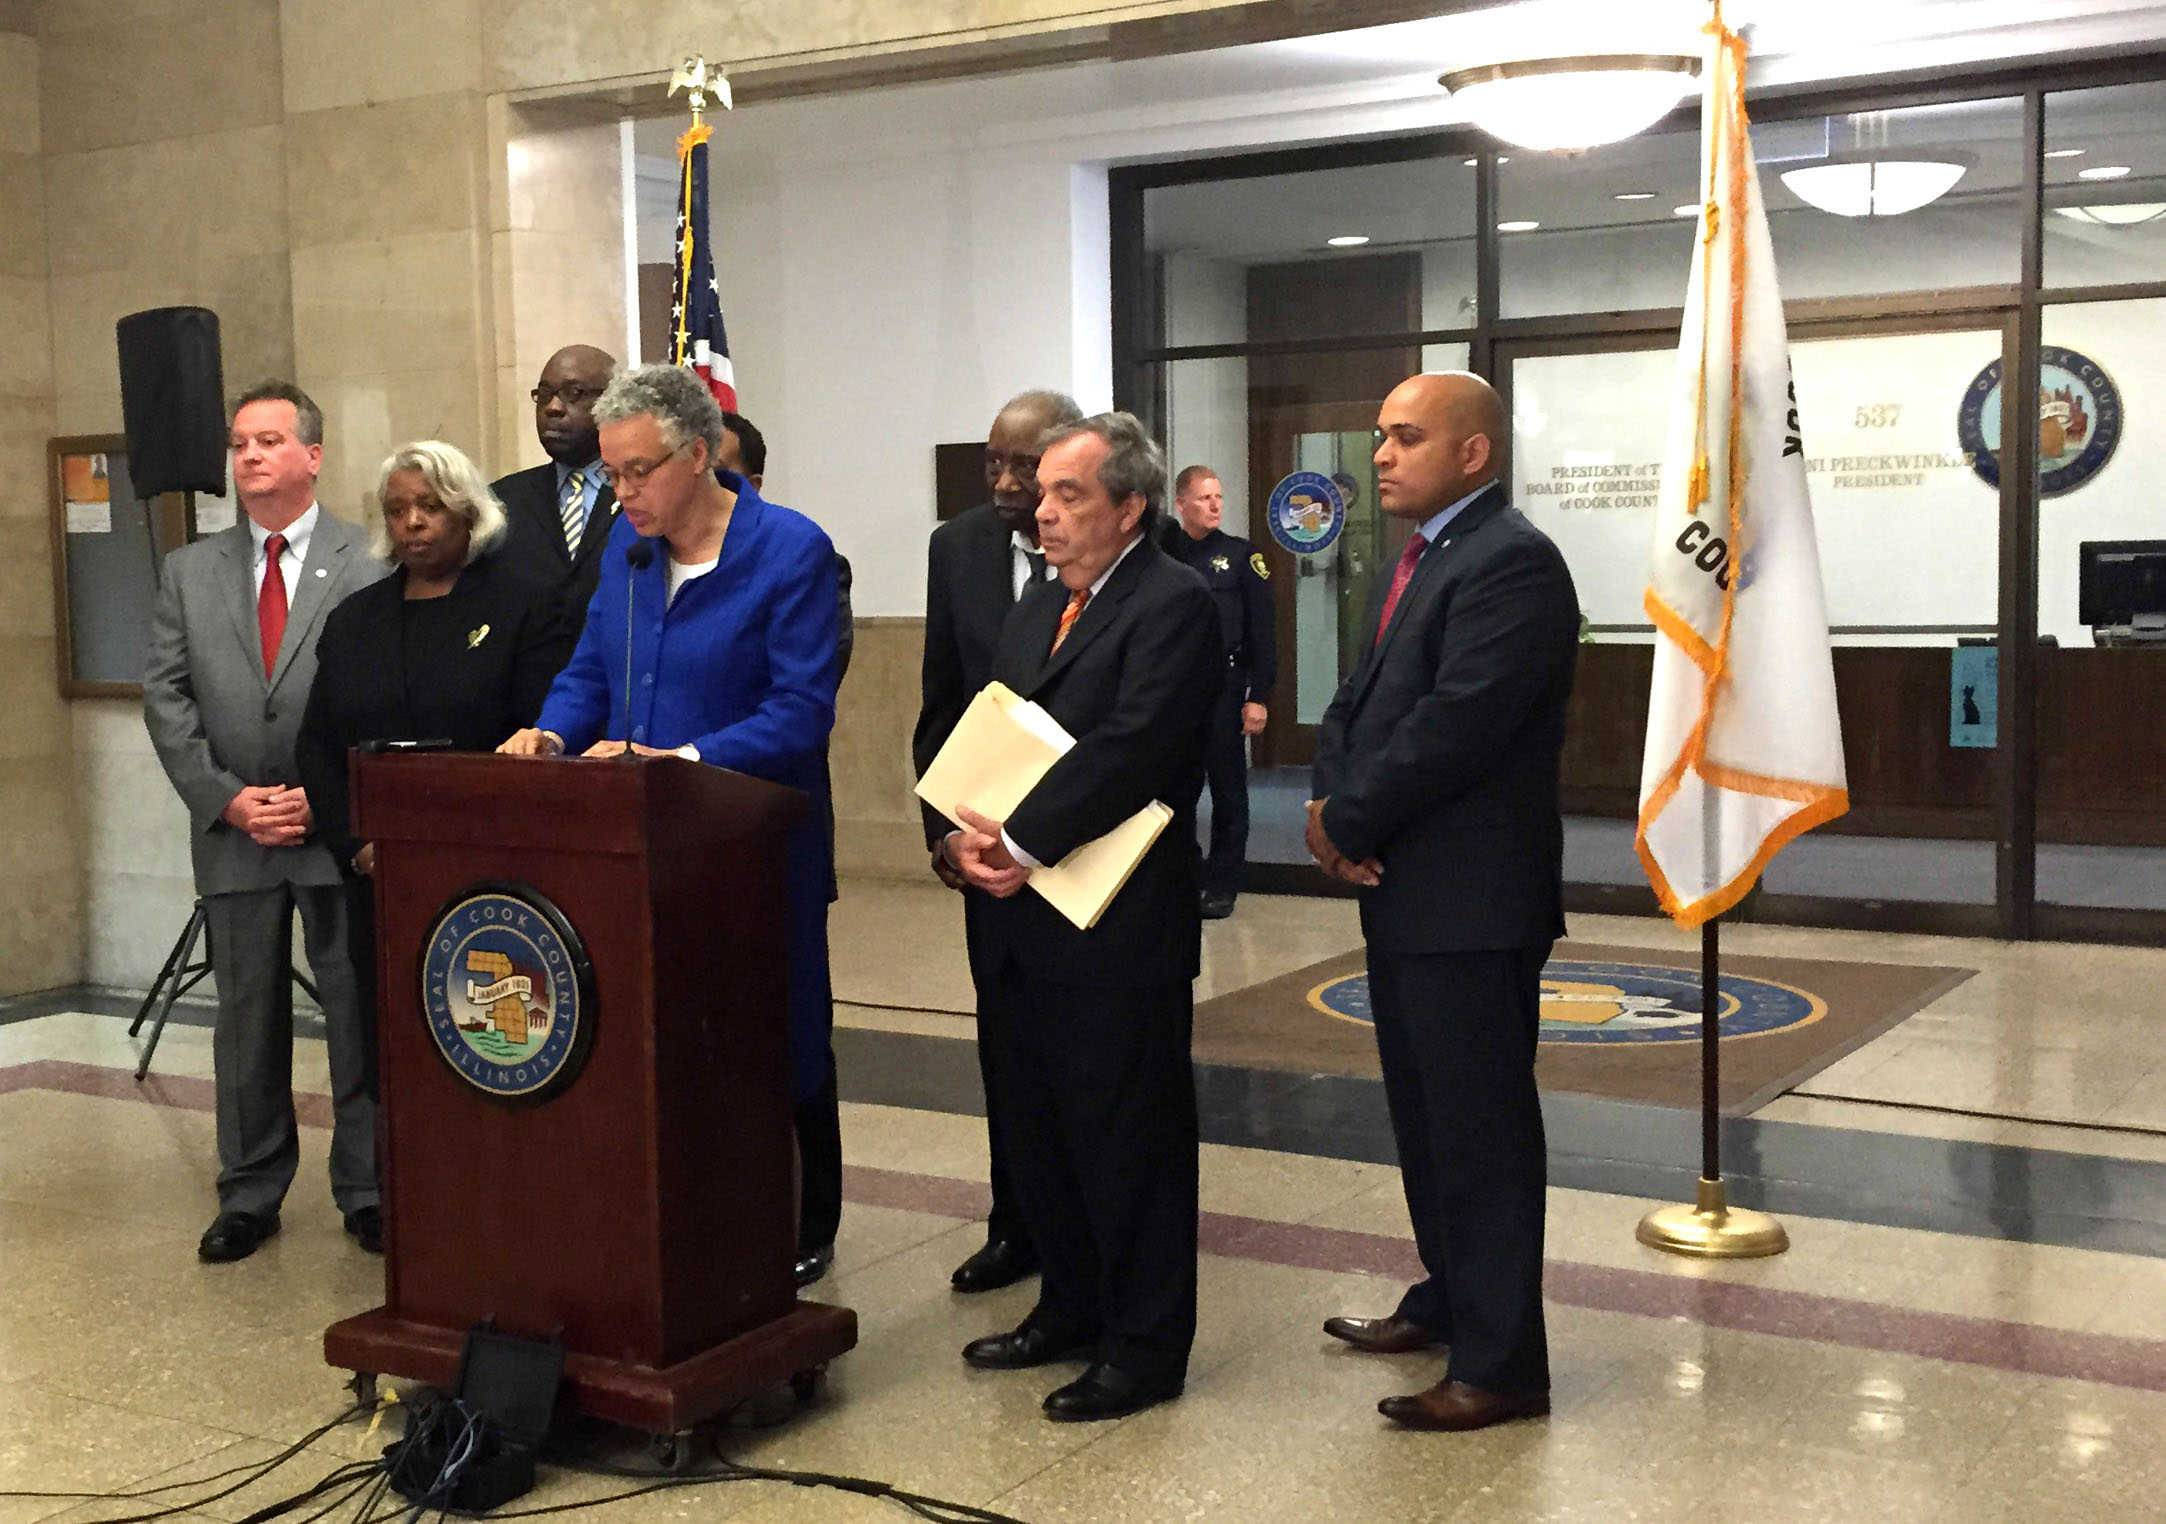 Cook County commissioners approve sales tax increase